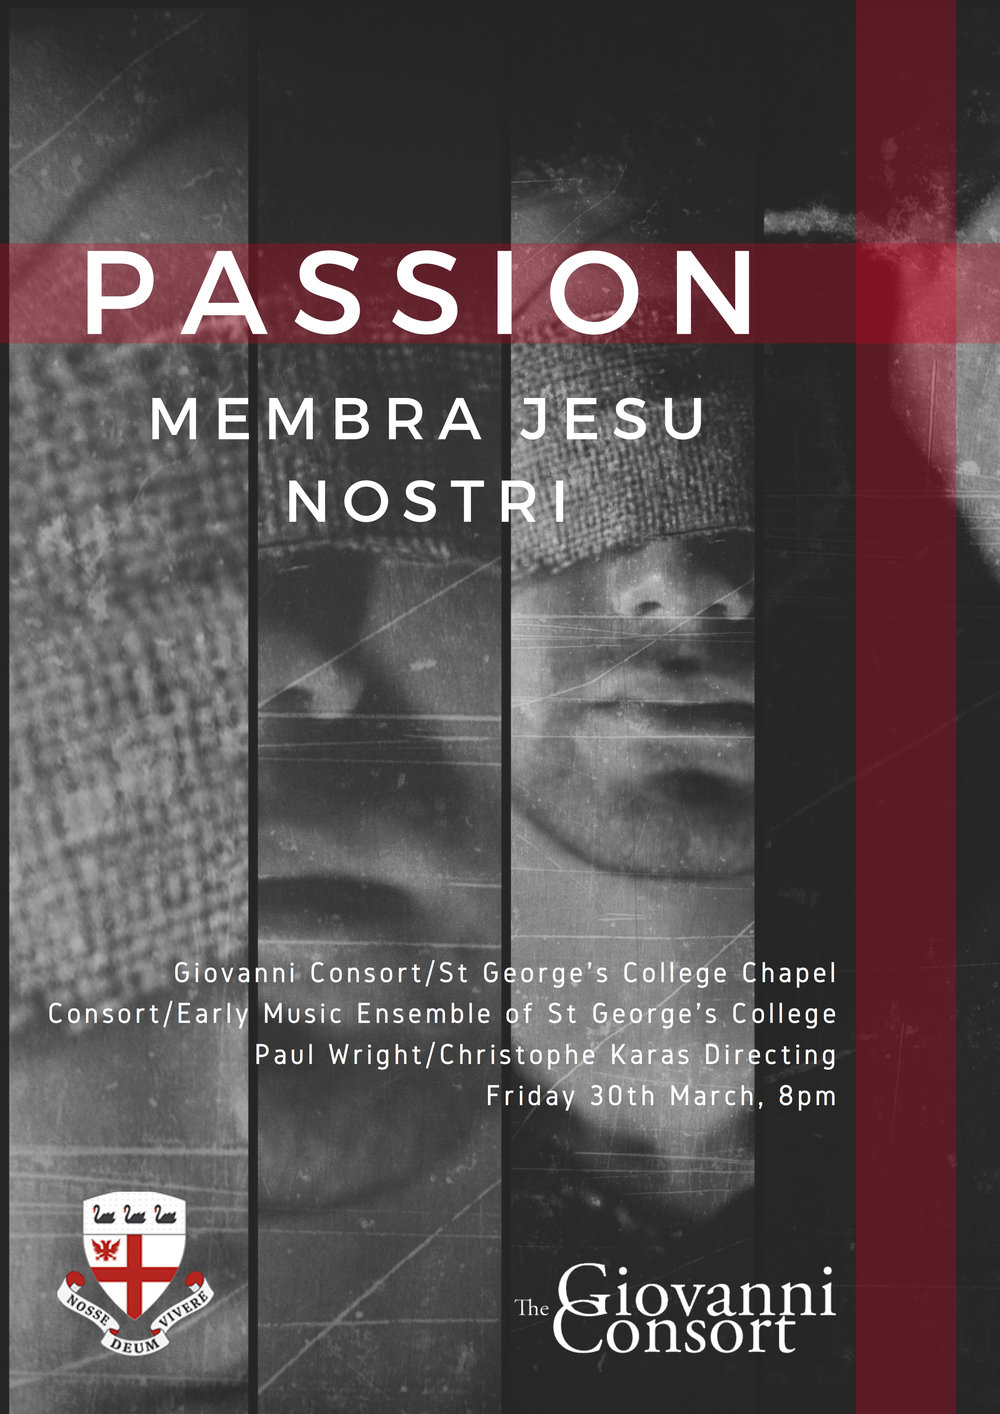 Passion Poster.jpg